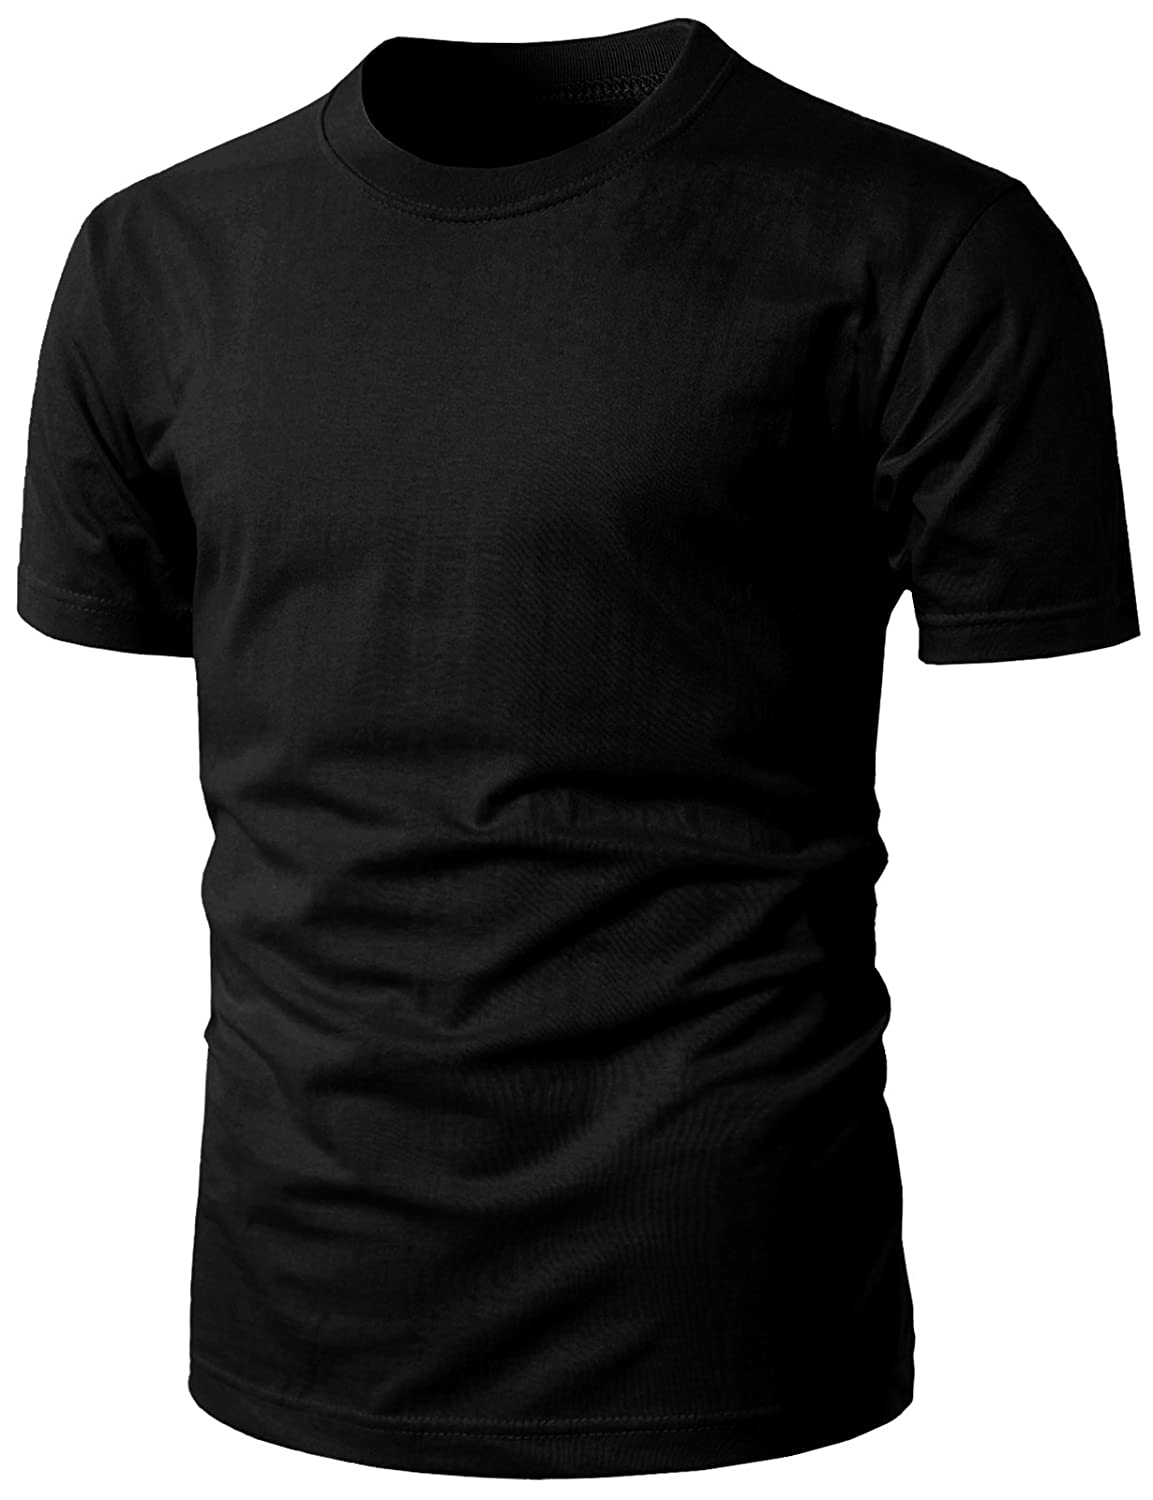 7c586ae0b Runs Large, contemporary fit, lightweight ring-spun cotton for superior  softness, cool garment and basic designed Crew-Neck or V-Neck T-shirts ...